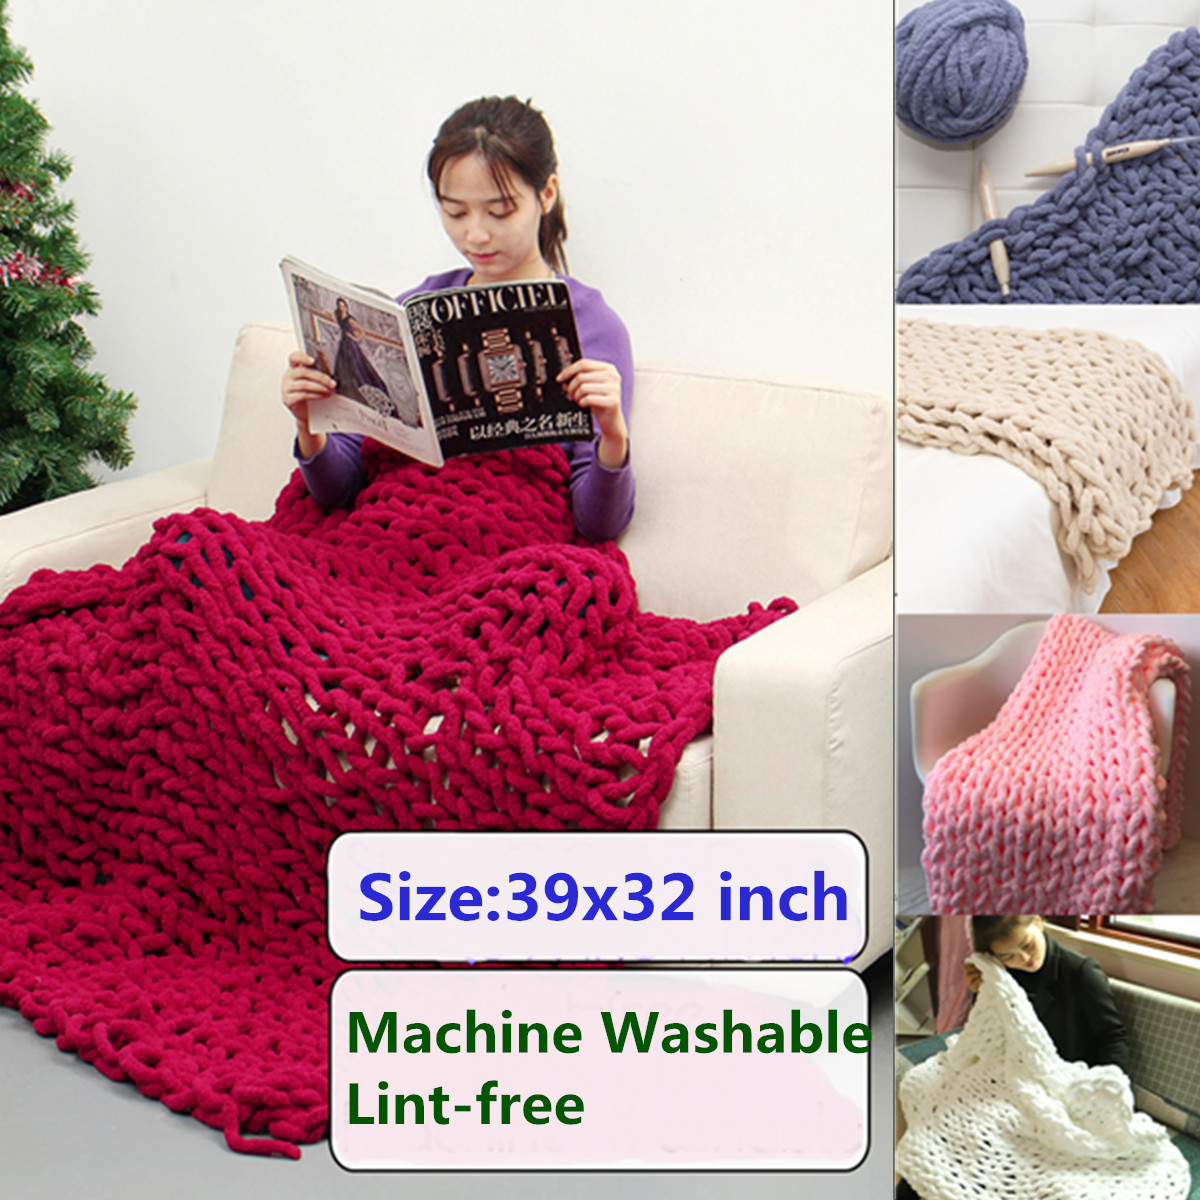 39x32 inch Washable Hand-woven Bulky Warm Soft Chunky Knit Bedding Blanket Lint-free Thick Yarn Knitted Sofa Throw Rug